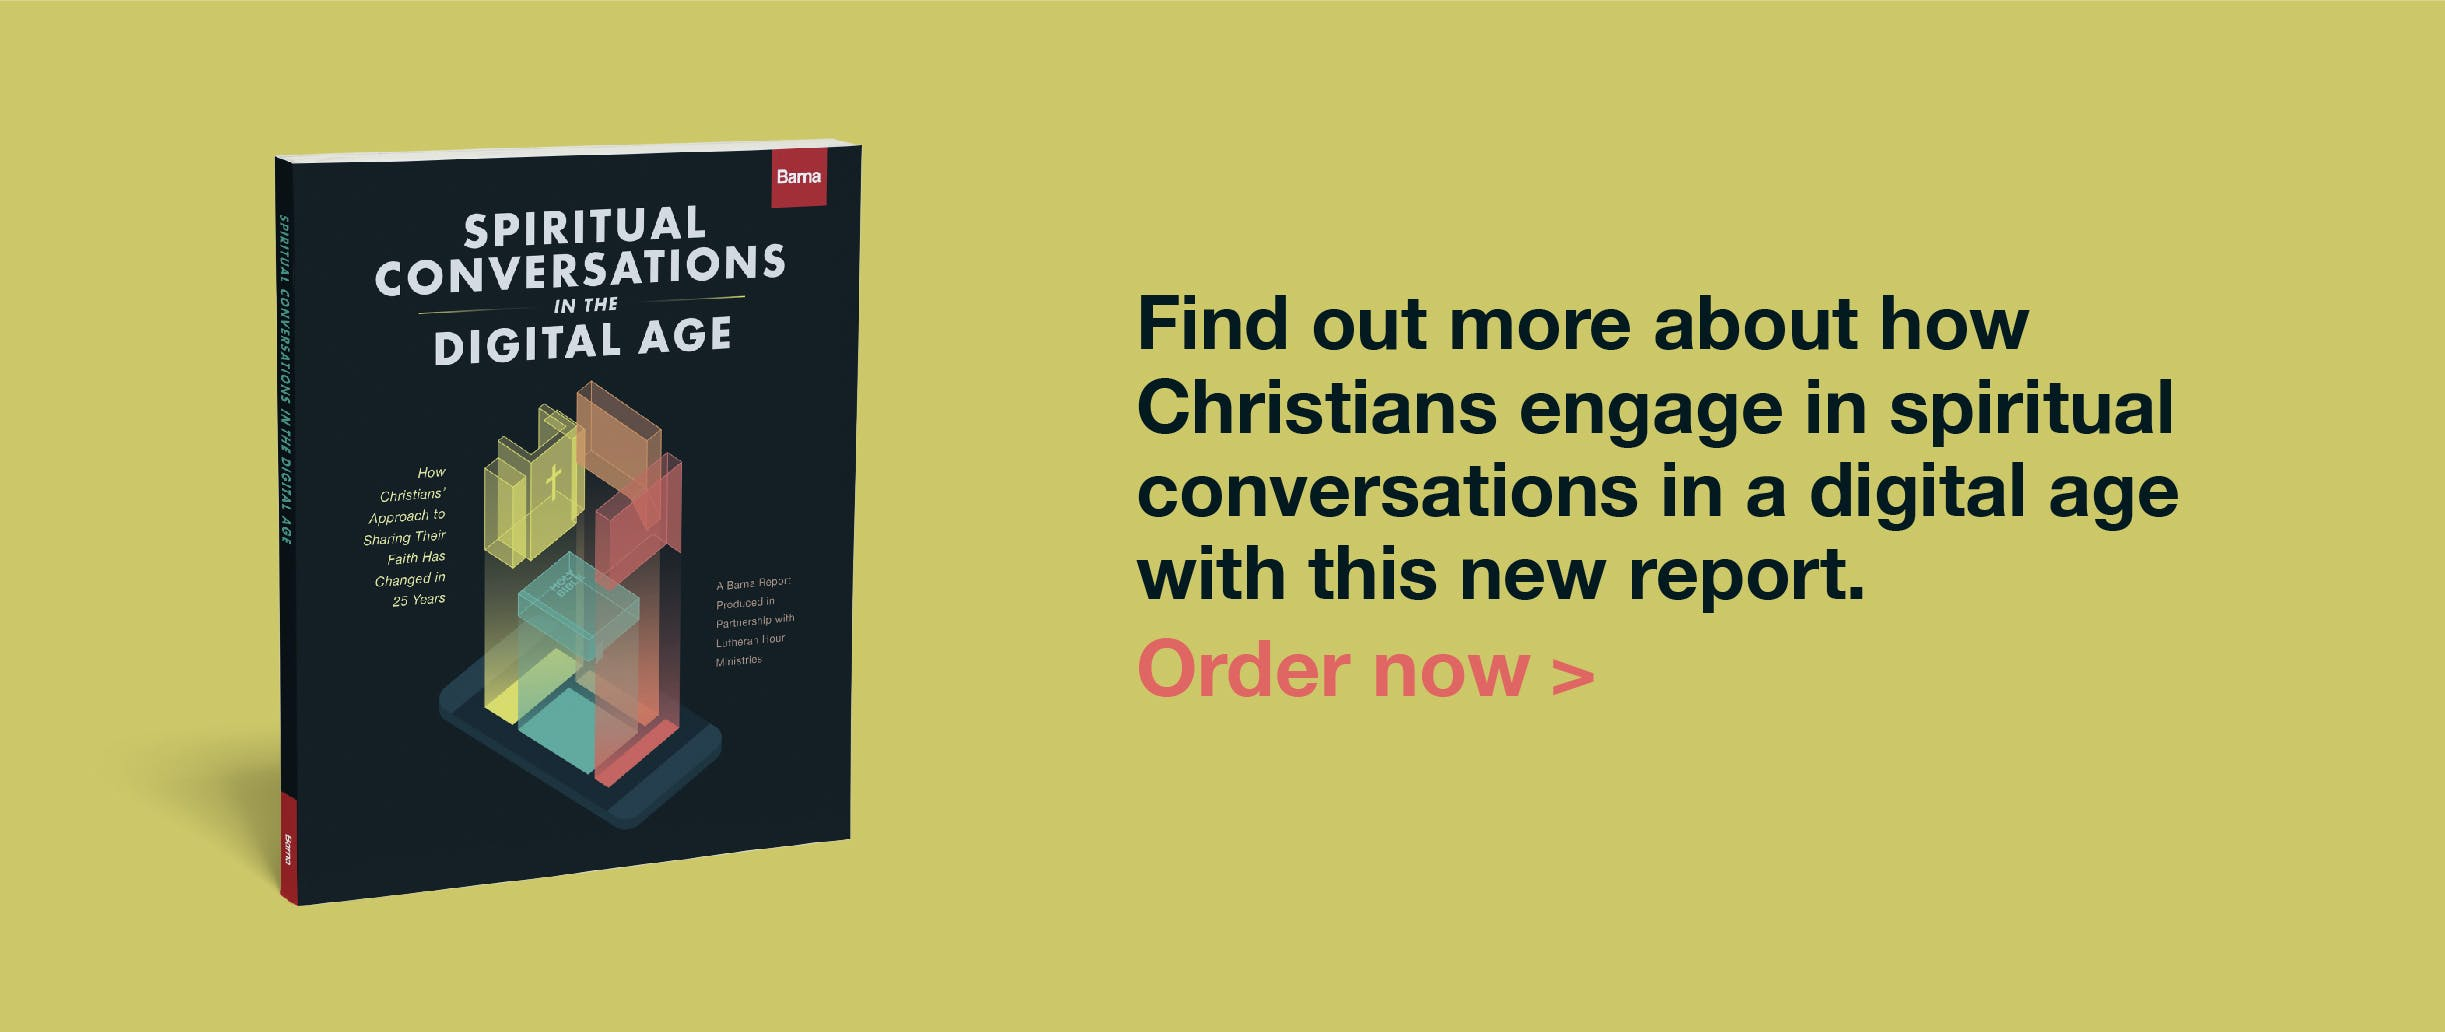 You are reading a free research sample of Spiritual Conversations in the Digital Age